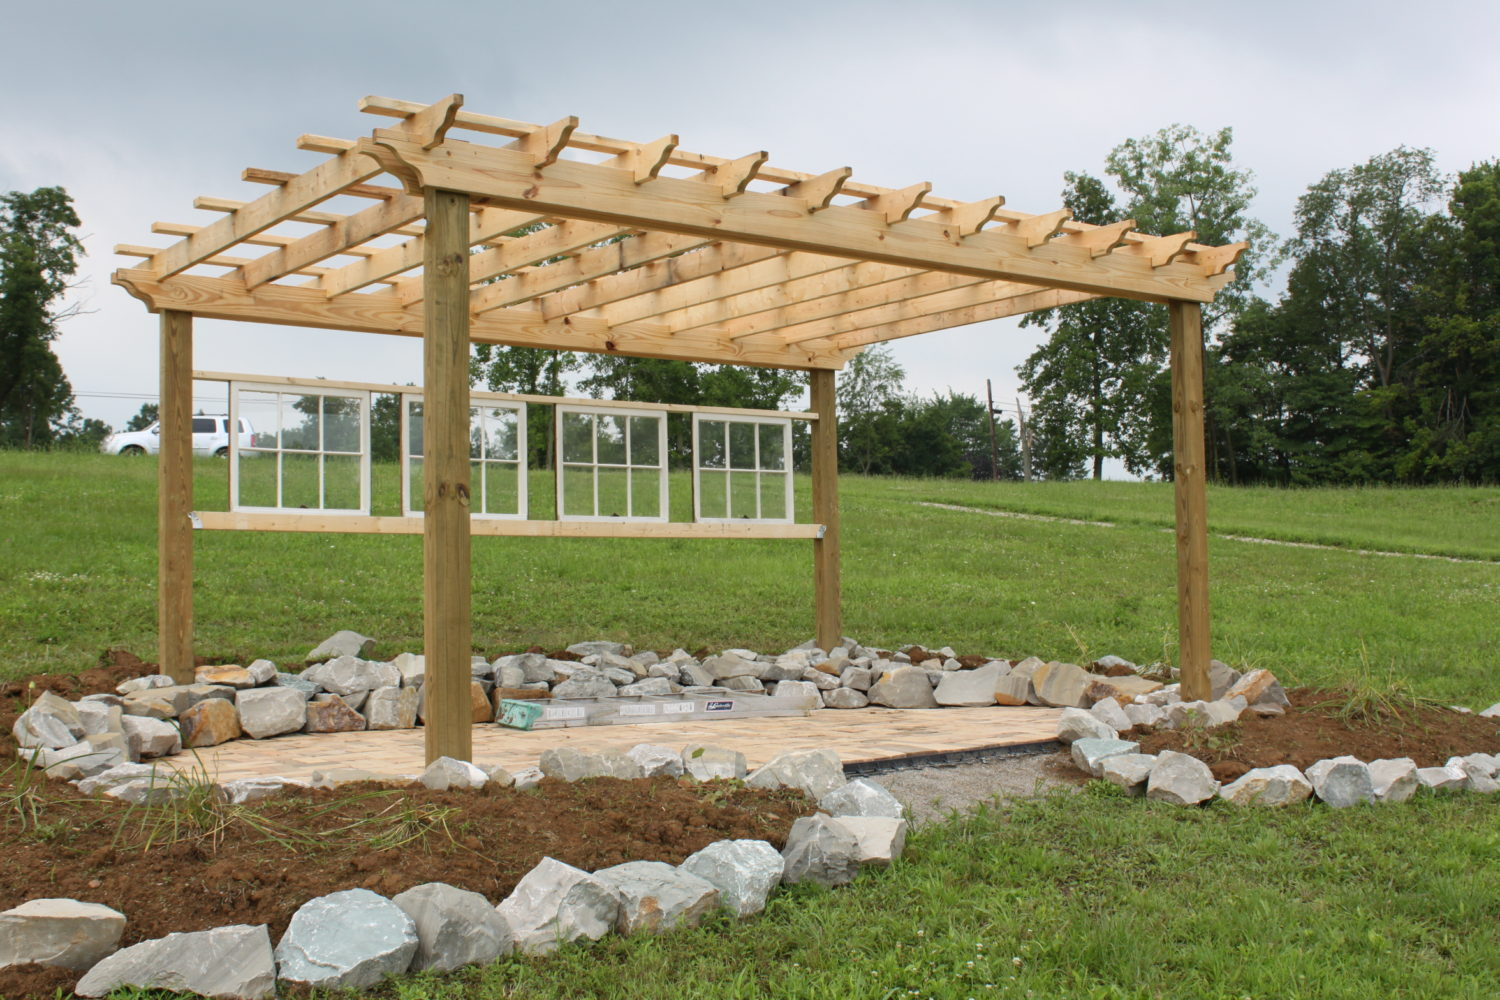 Creating Your Own Outdoor Paradise Building A Pergola To Enjoy